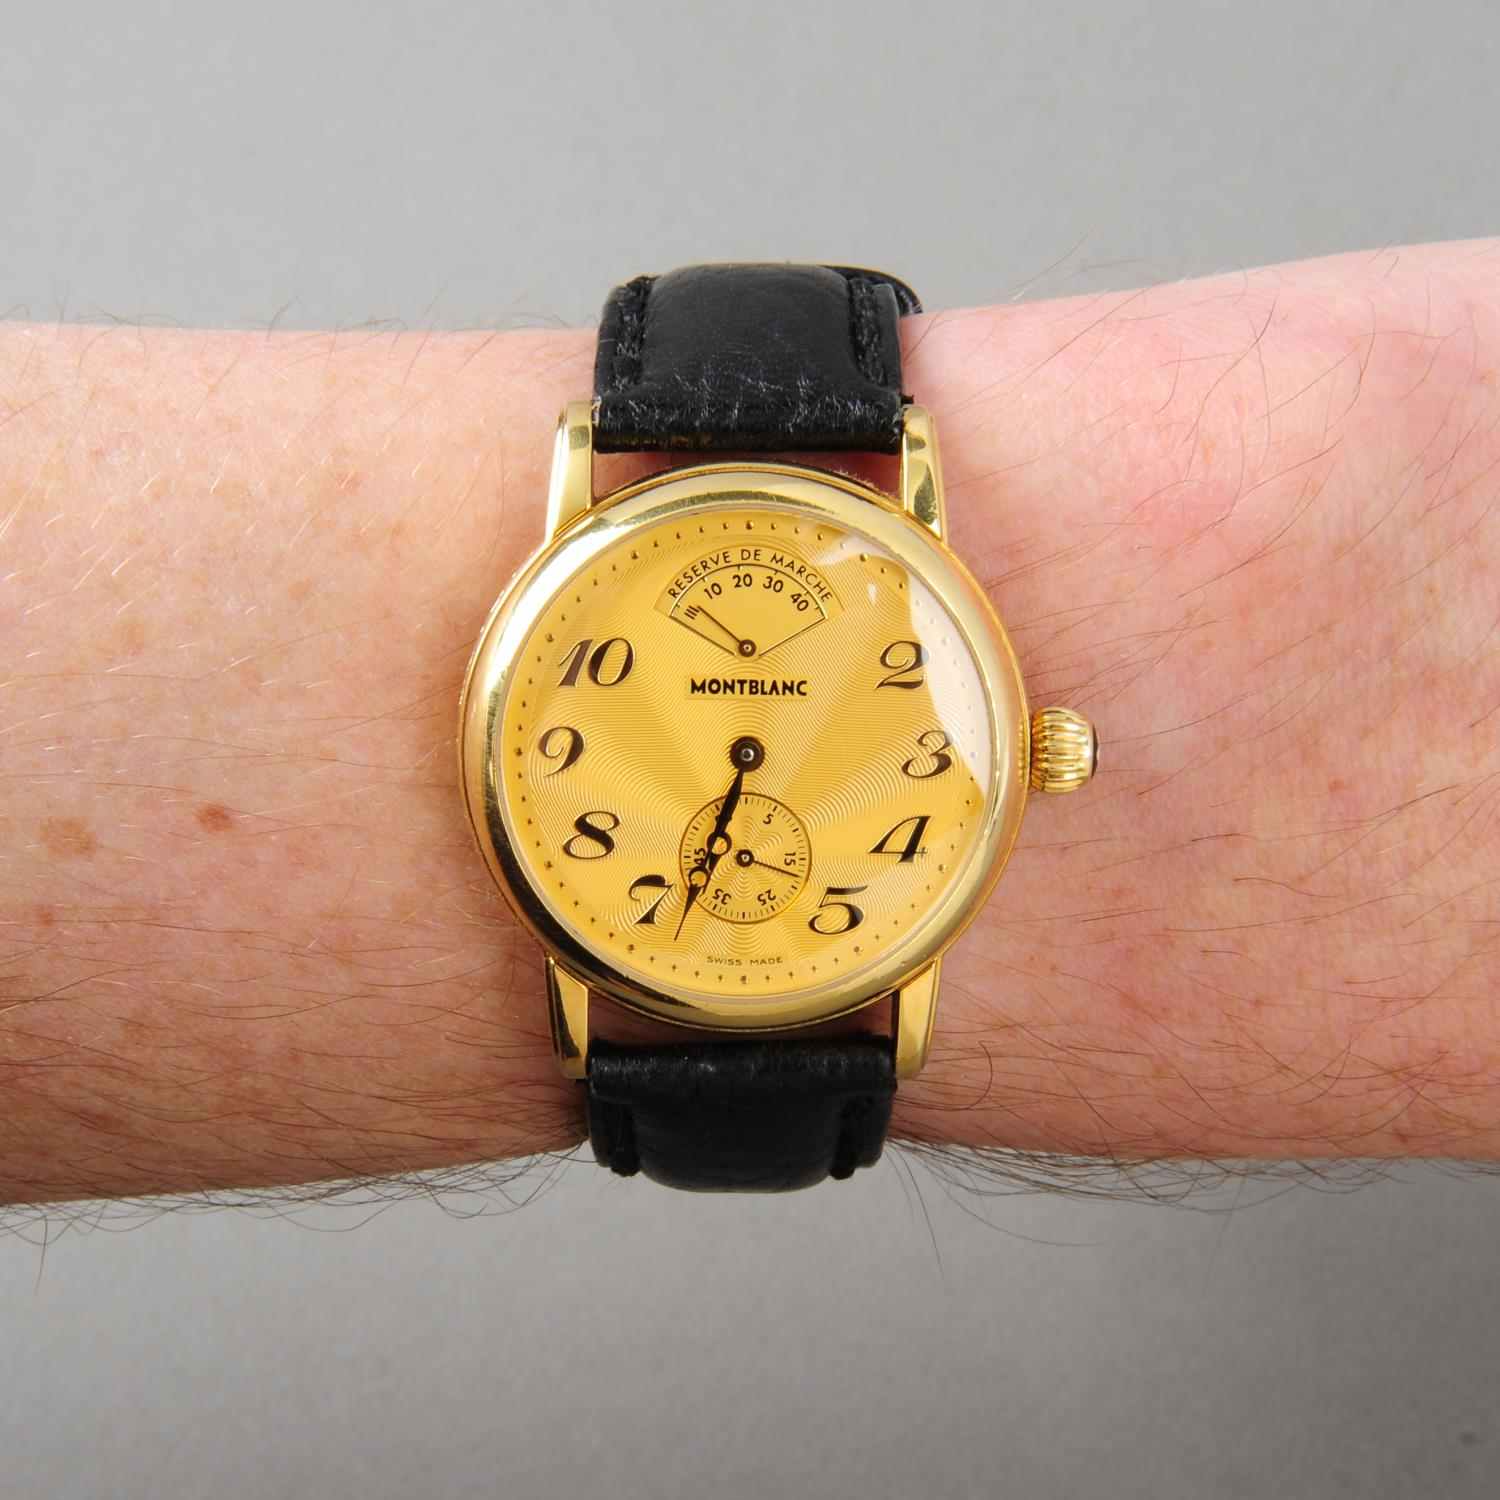 Lot 178 - MONTBLANC - a gentleman's Meisterstuck wrist watch. 18ct yellow gold case. Reference 7007, serial